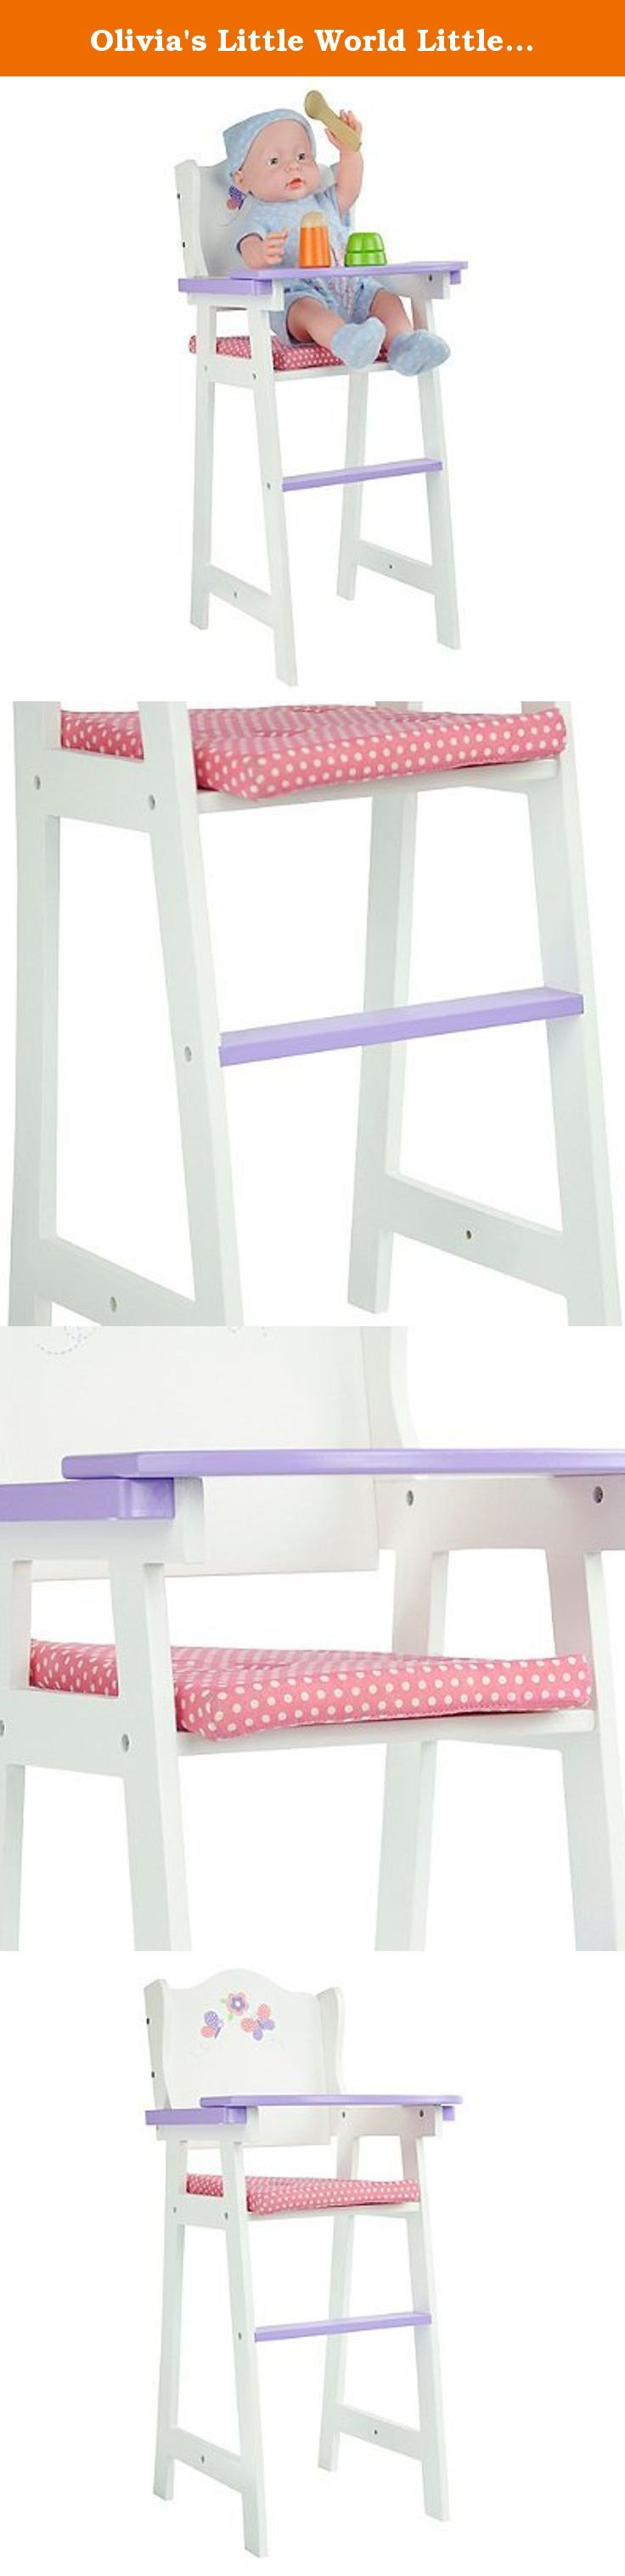 """Olivia's Little World Little Princess 18"""" Baby Doll High Chair in Pink/Multi. Olivia's Little World Little Princess 18-Inch Baby Doll High Chair in Pink/Multi Your little one will love the Little Princess 18-Inch Baby Doll High Chair from Olivia's Little World when it's time to play with her dolls. The safe and sturdy design with purple tray area and padding accommodates dolls up to 18 inches tall. Perfect for playtime, your little one will enjoy the Little Princess 18-Inch Baby Doll High..."""